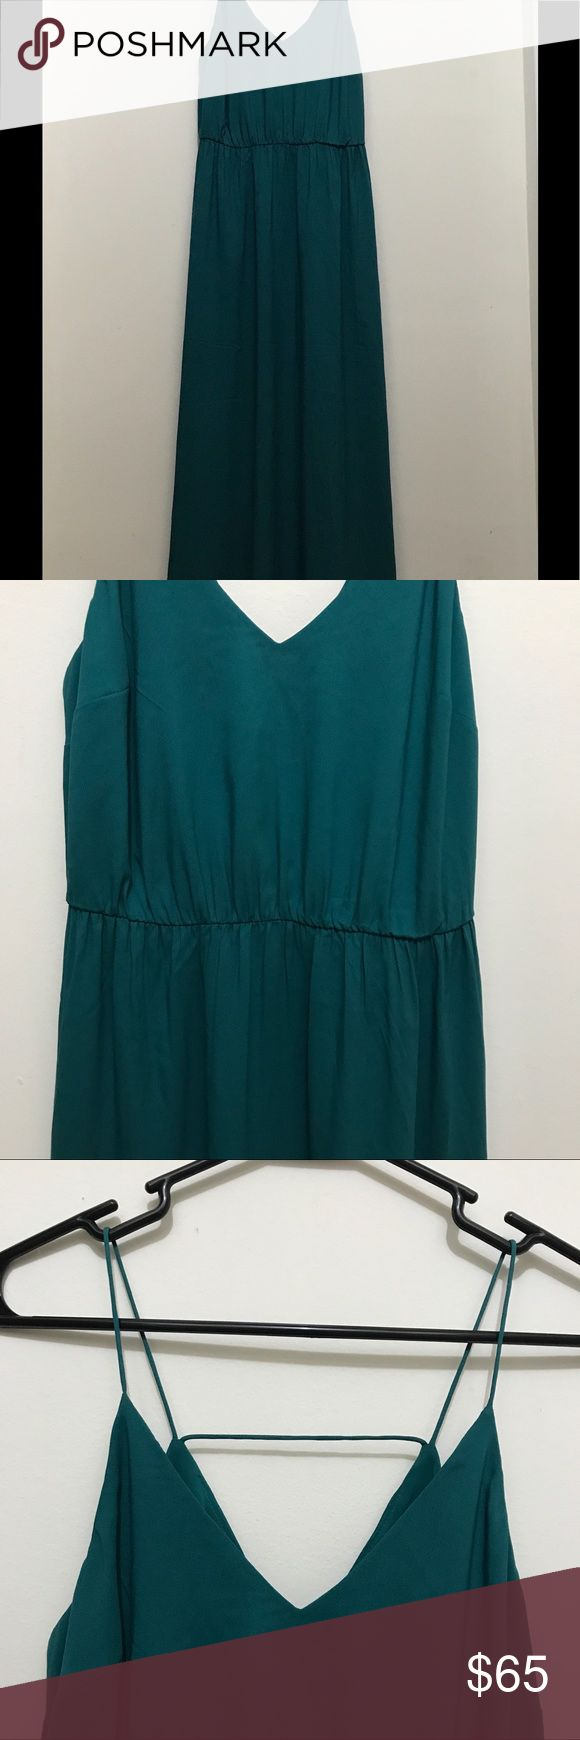 NWT Ann Taylor Loft Green Petite Maxi Dress SPAGHETTI STRAP  V NECK STYLE FRONT WITH V NECK BACK WITH SLIT ON ONE SIDE GREEN COLOR 100% POLYESTER PETITE SIZE 4P Loft Ann Taylor Dresses Maxi